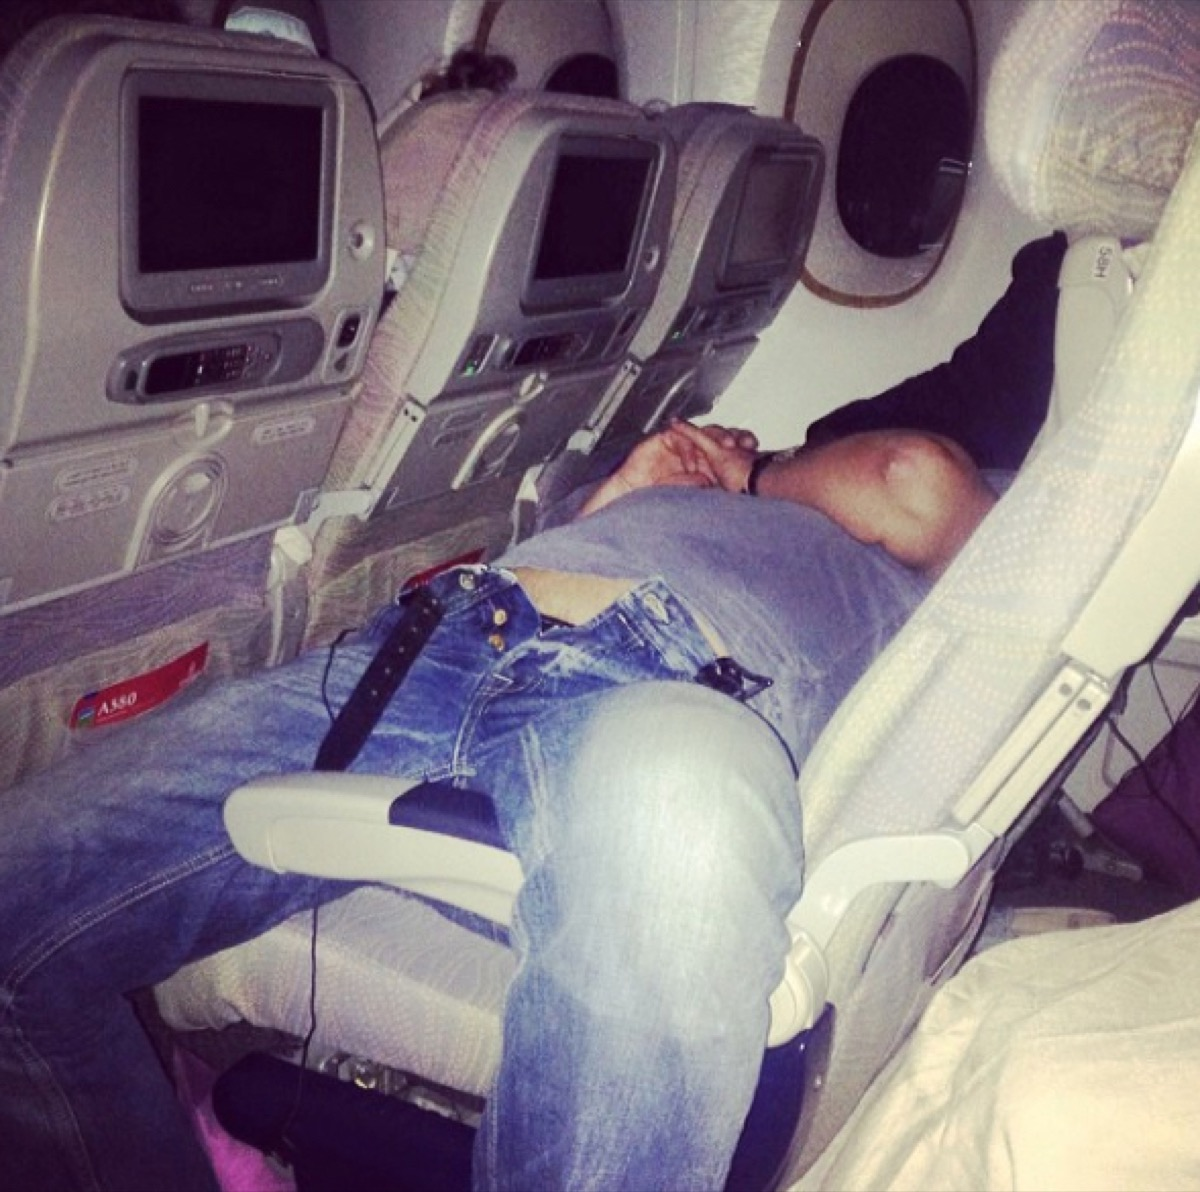 man with pants unbuttoned on airplane photos of terrible airplane passengers